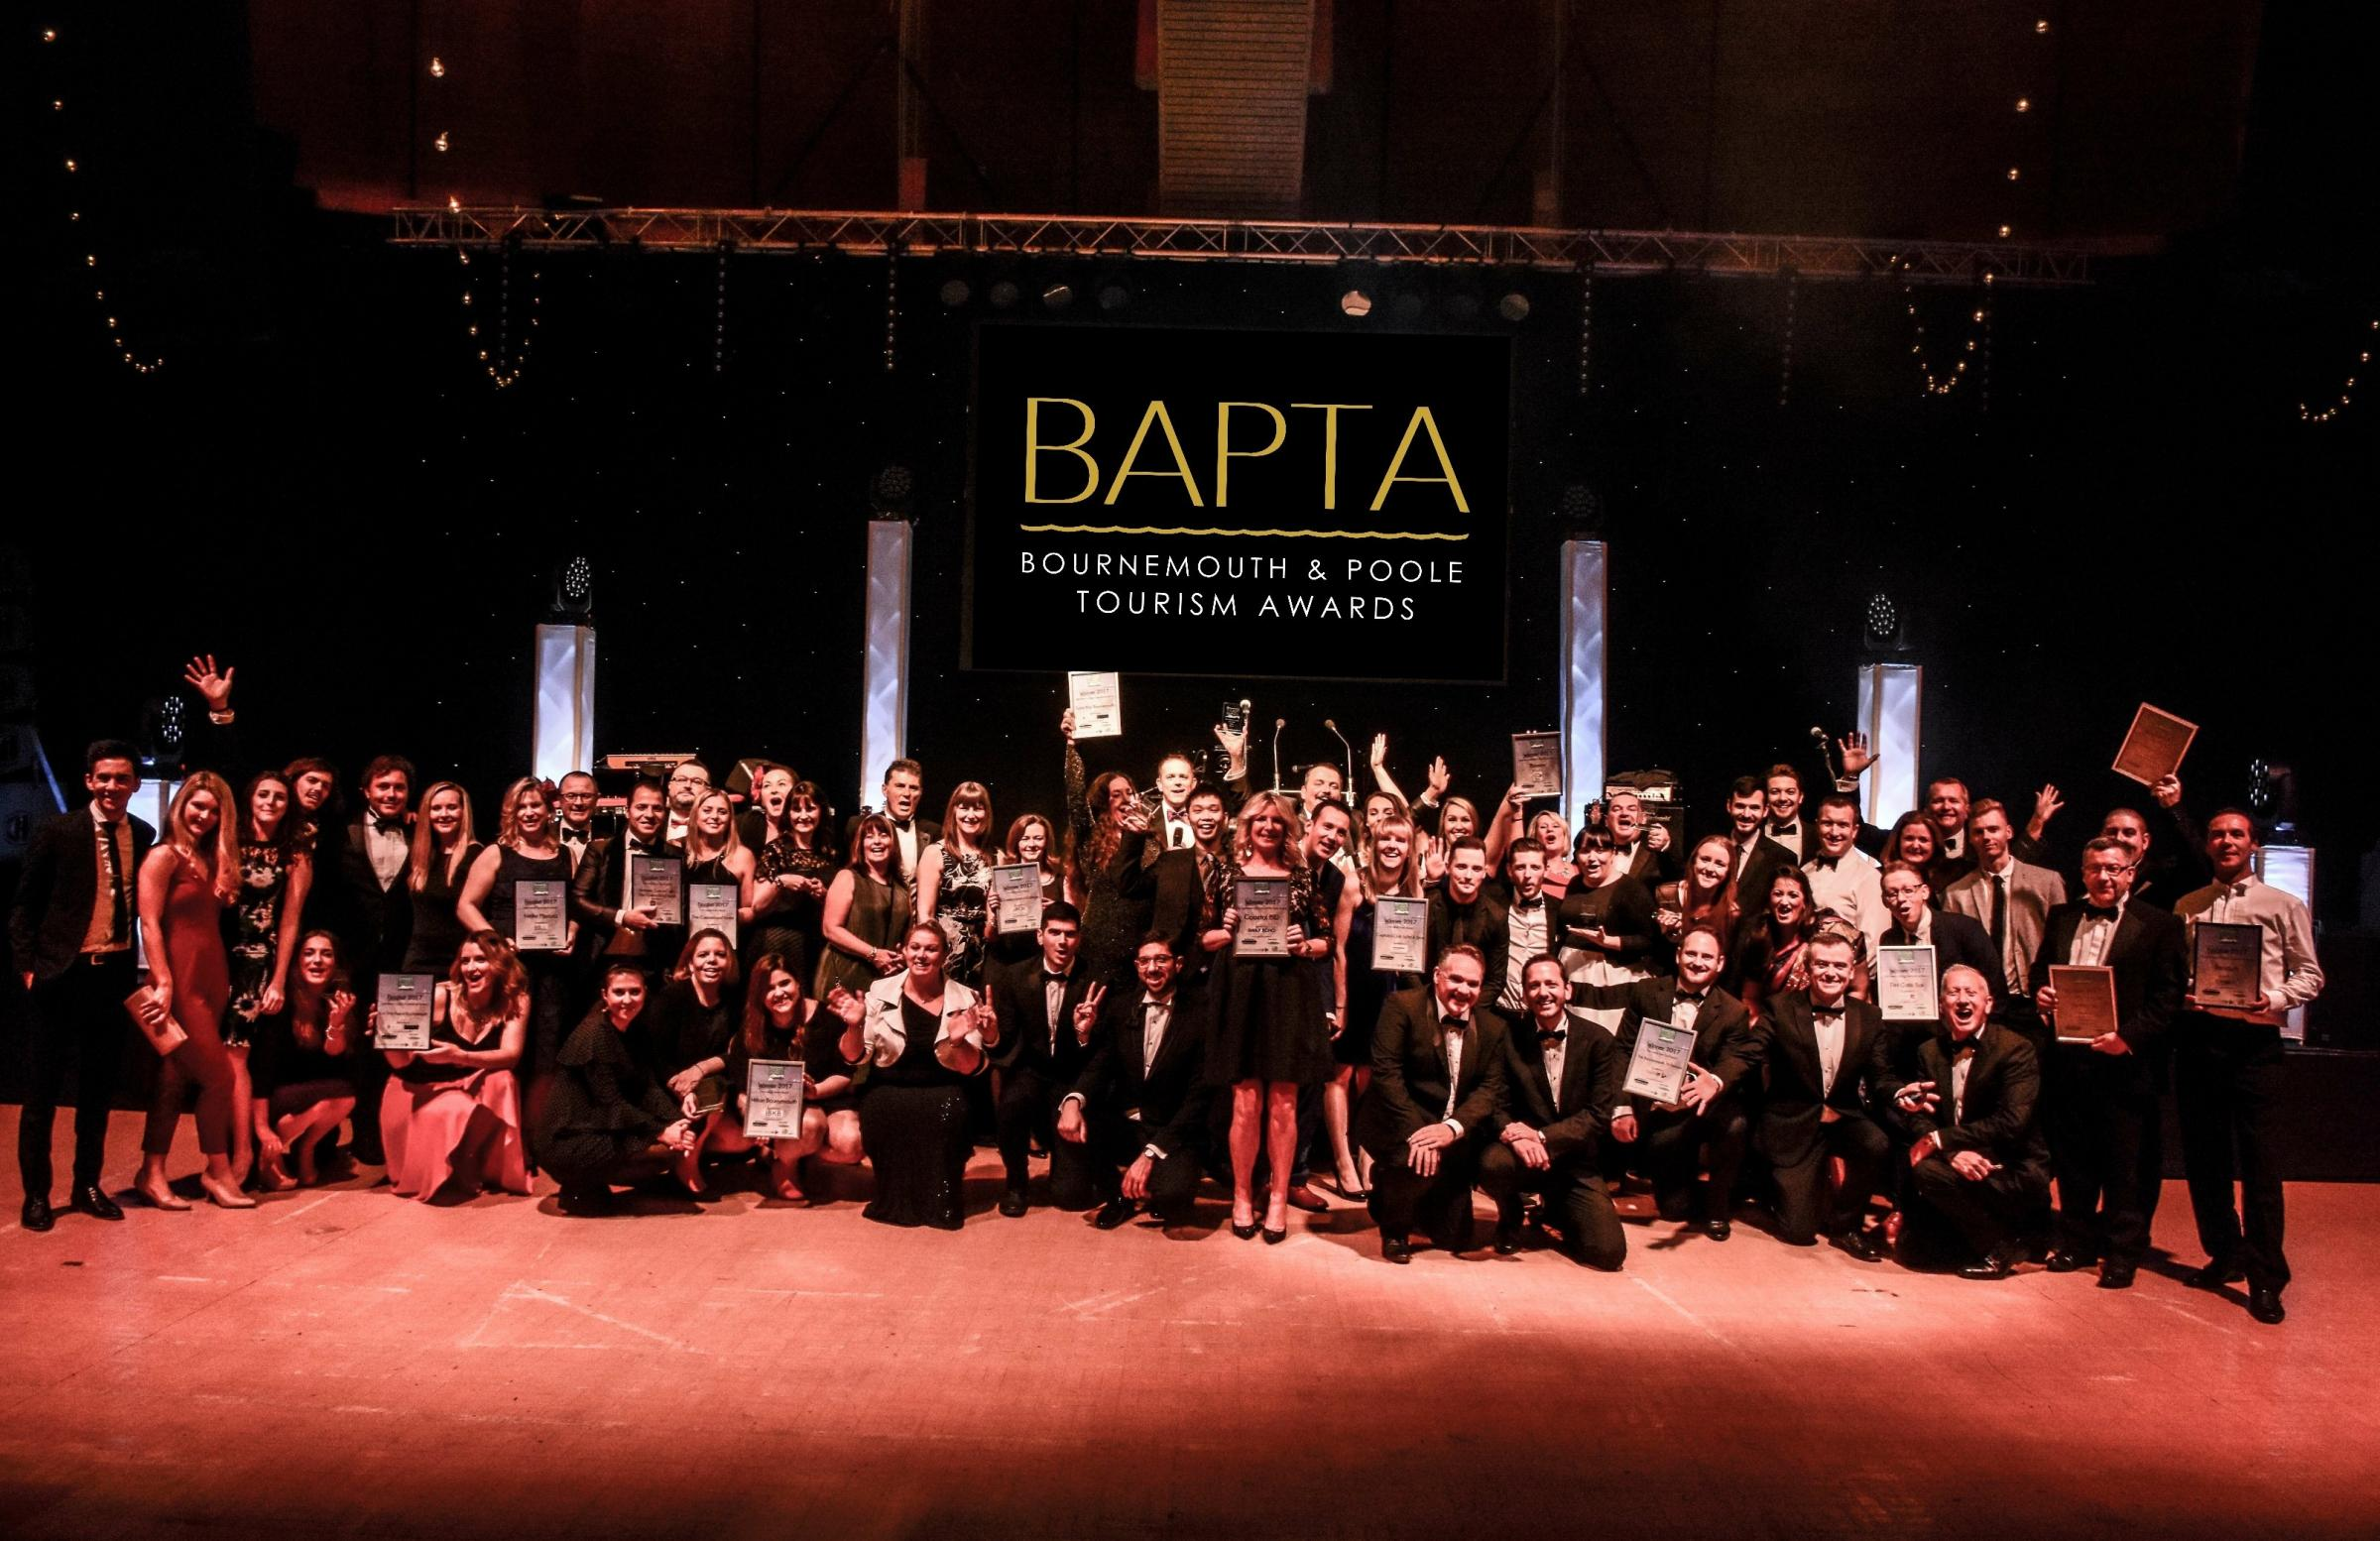 The 2018 Bournemouth and Poole Tourism Awards (BAPTAs)